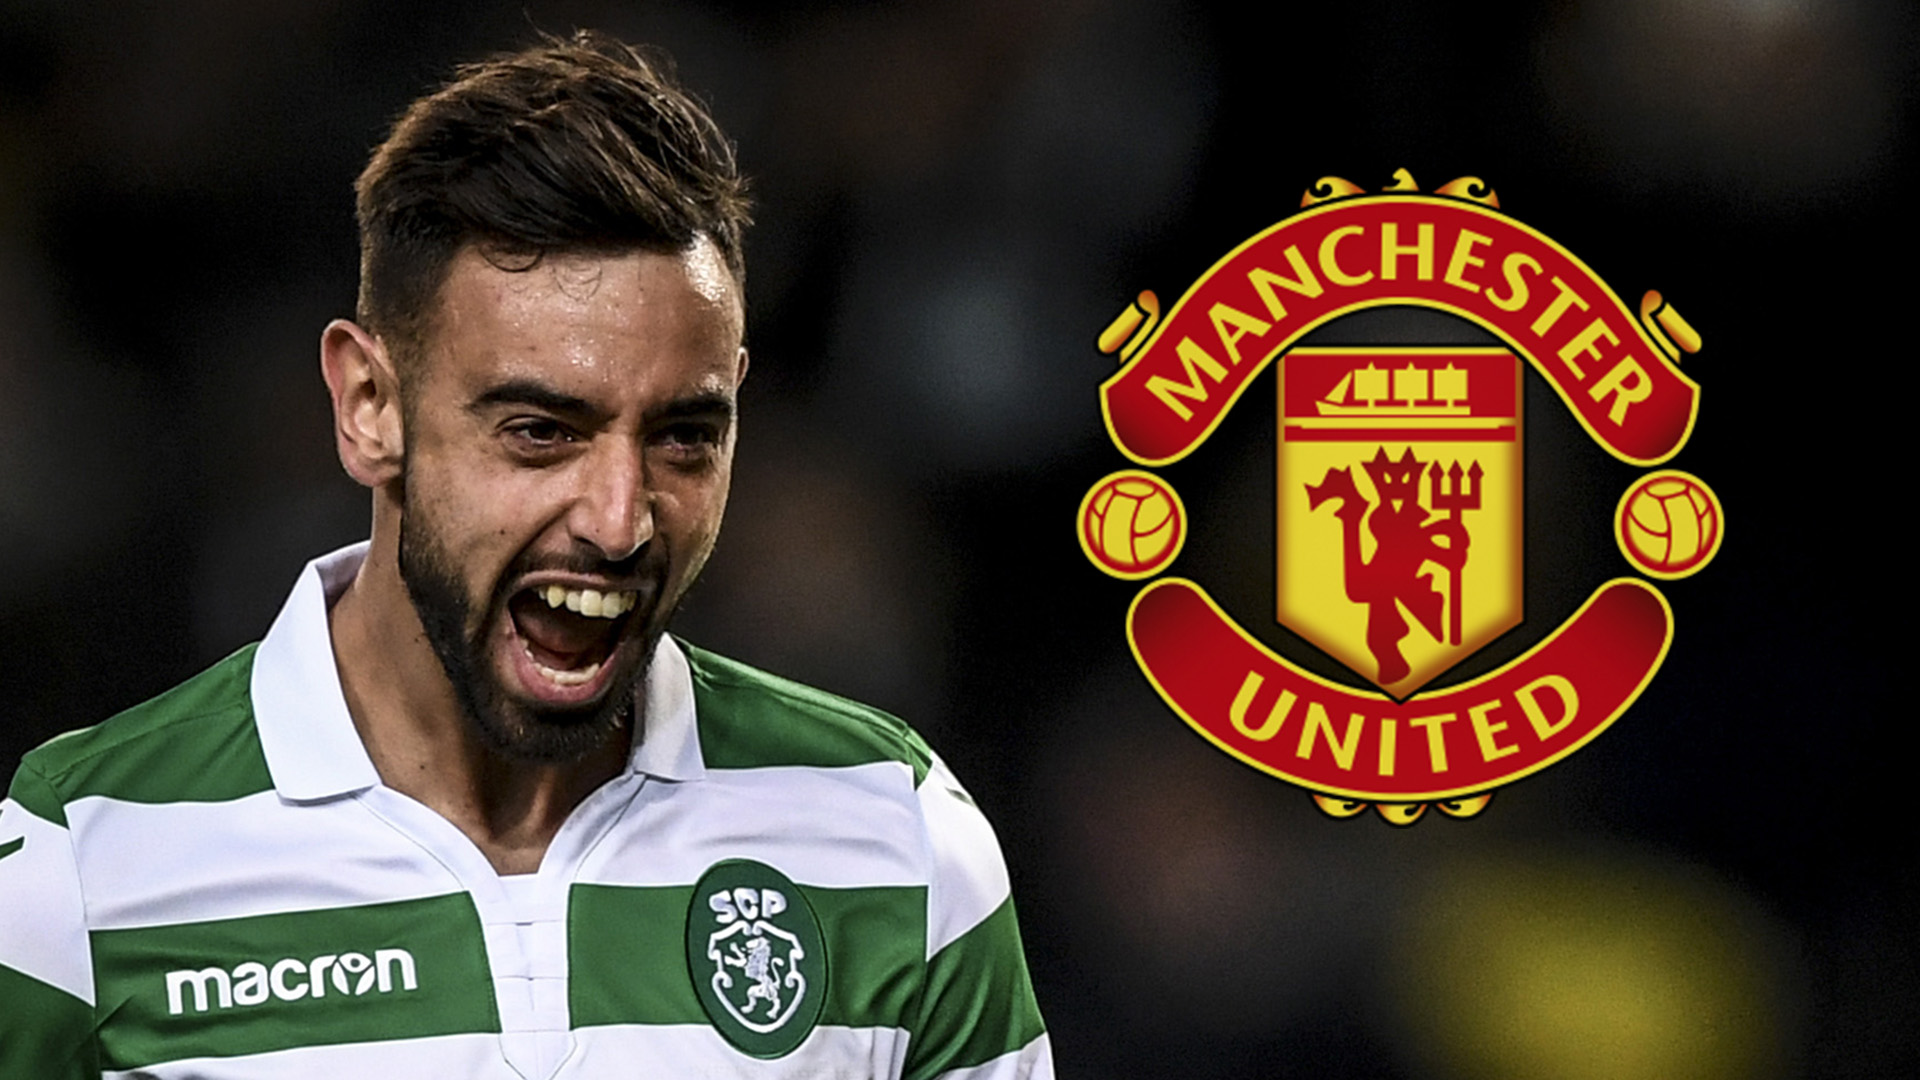 'I don't care about the transfer market' - Man Utd target Fernandes waiting on Sporting decision